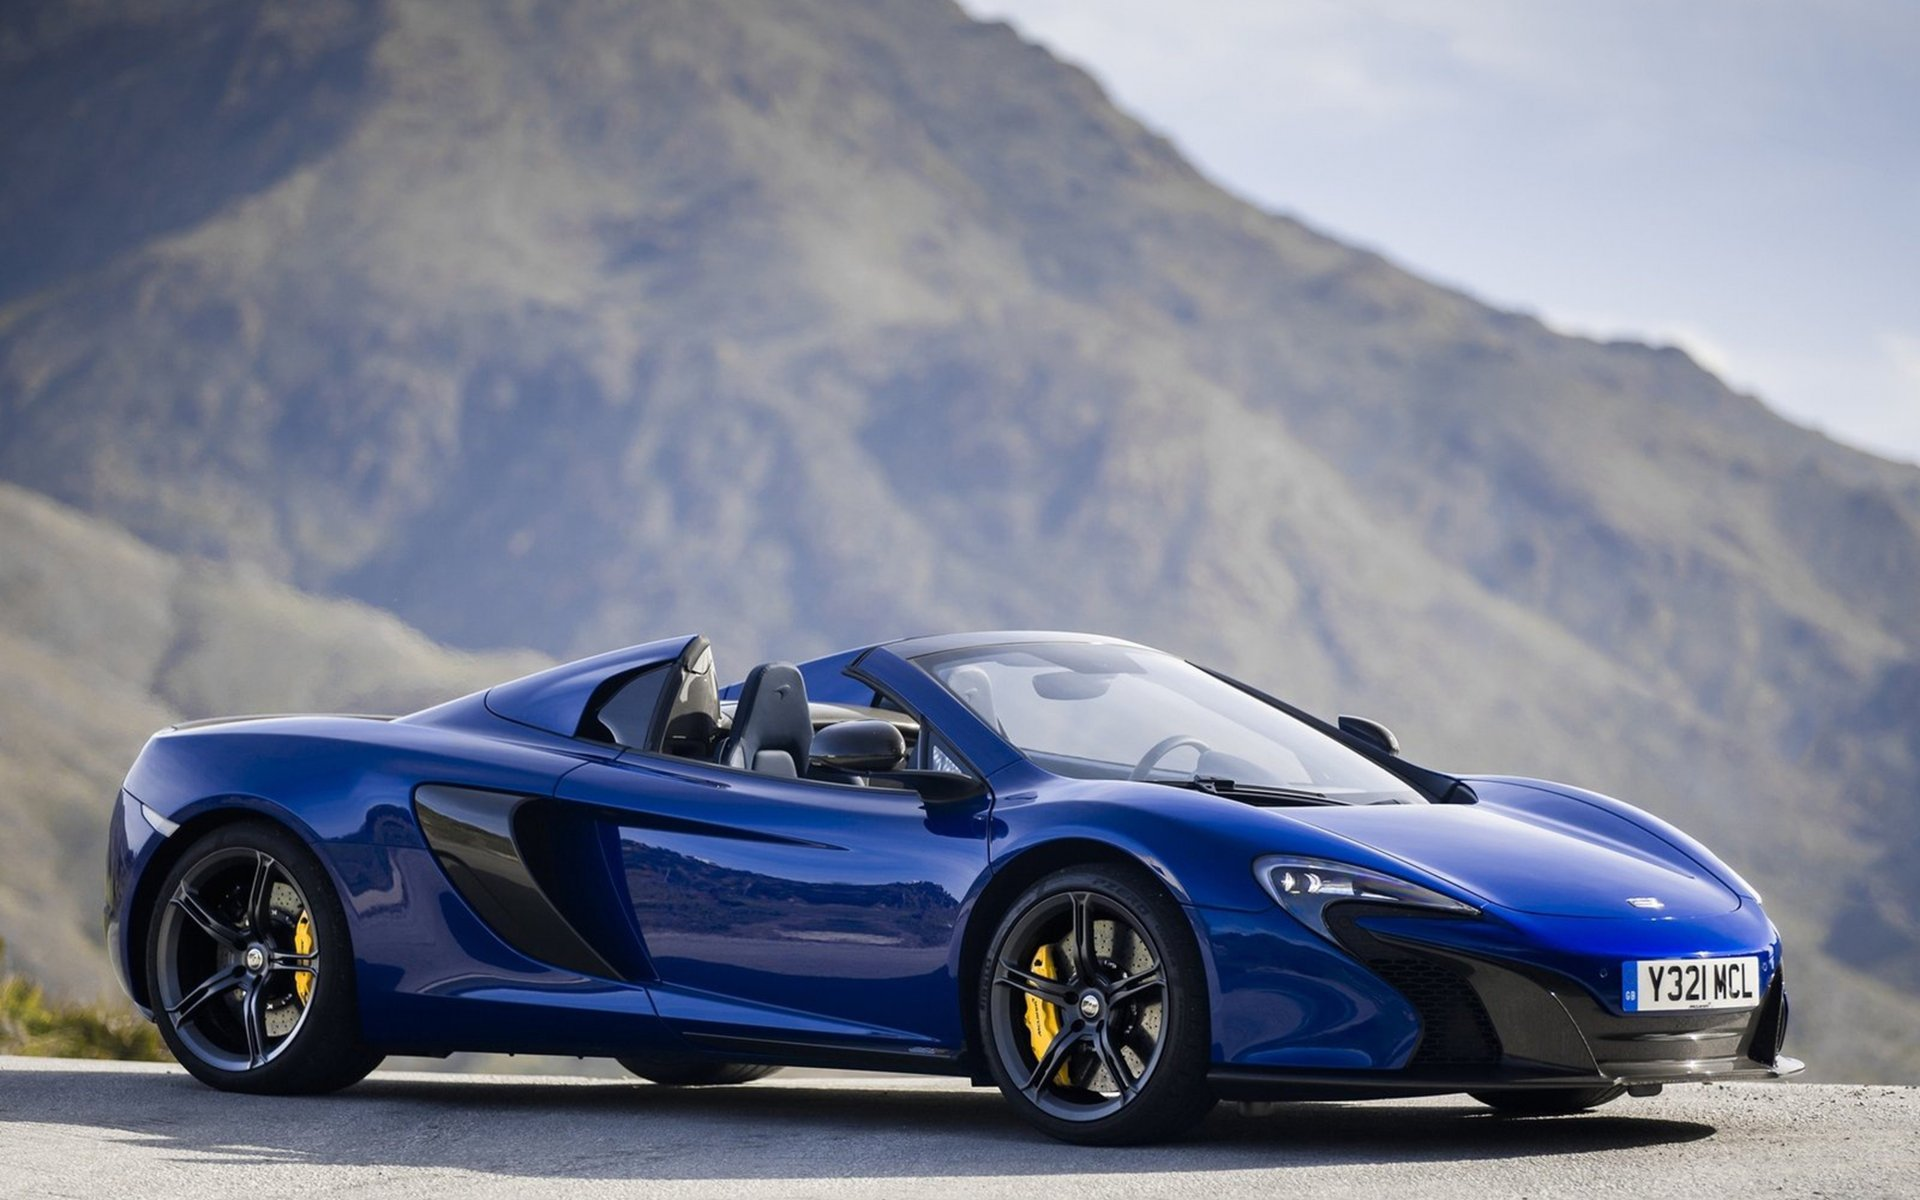 Download 2015 Mclaren 650s Convertible Supercar Wallpaper Hd